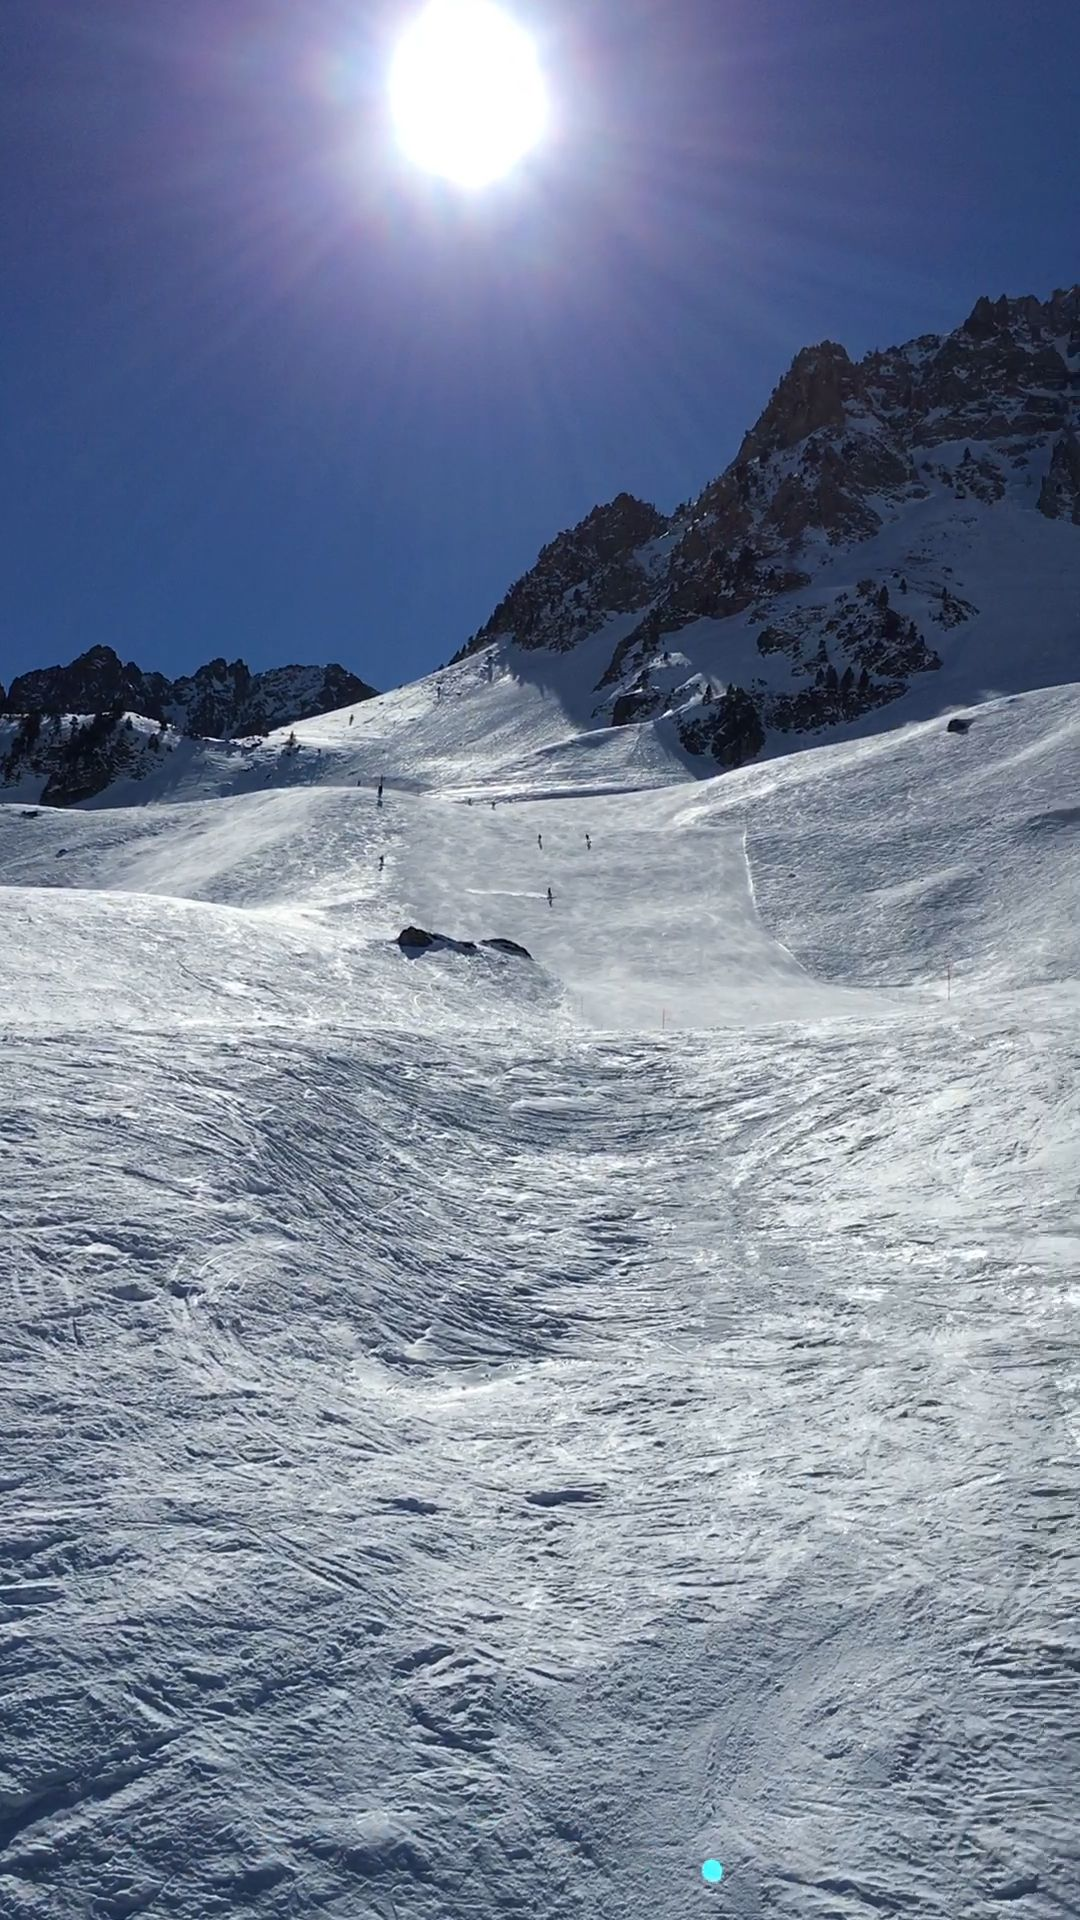 The perfect ski day in France #France #Pyrenees #ski #Europe #travel